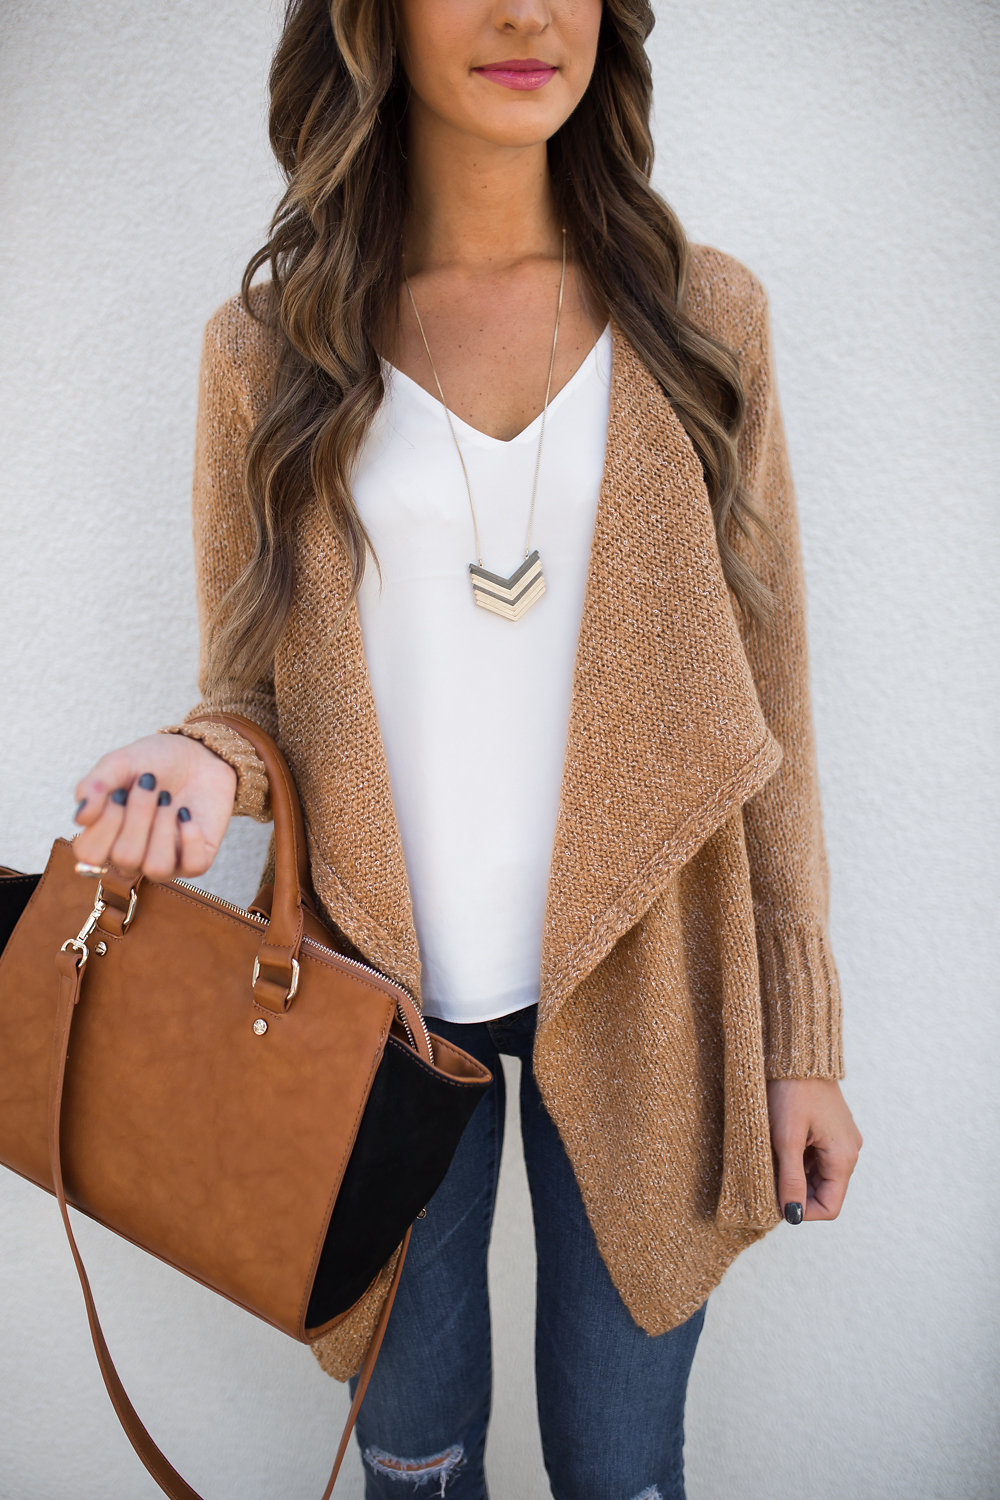 my cardigan obsession